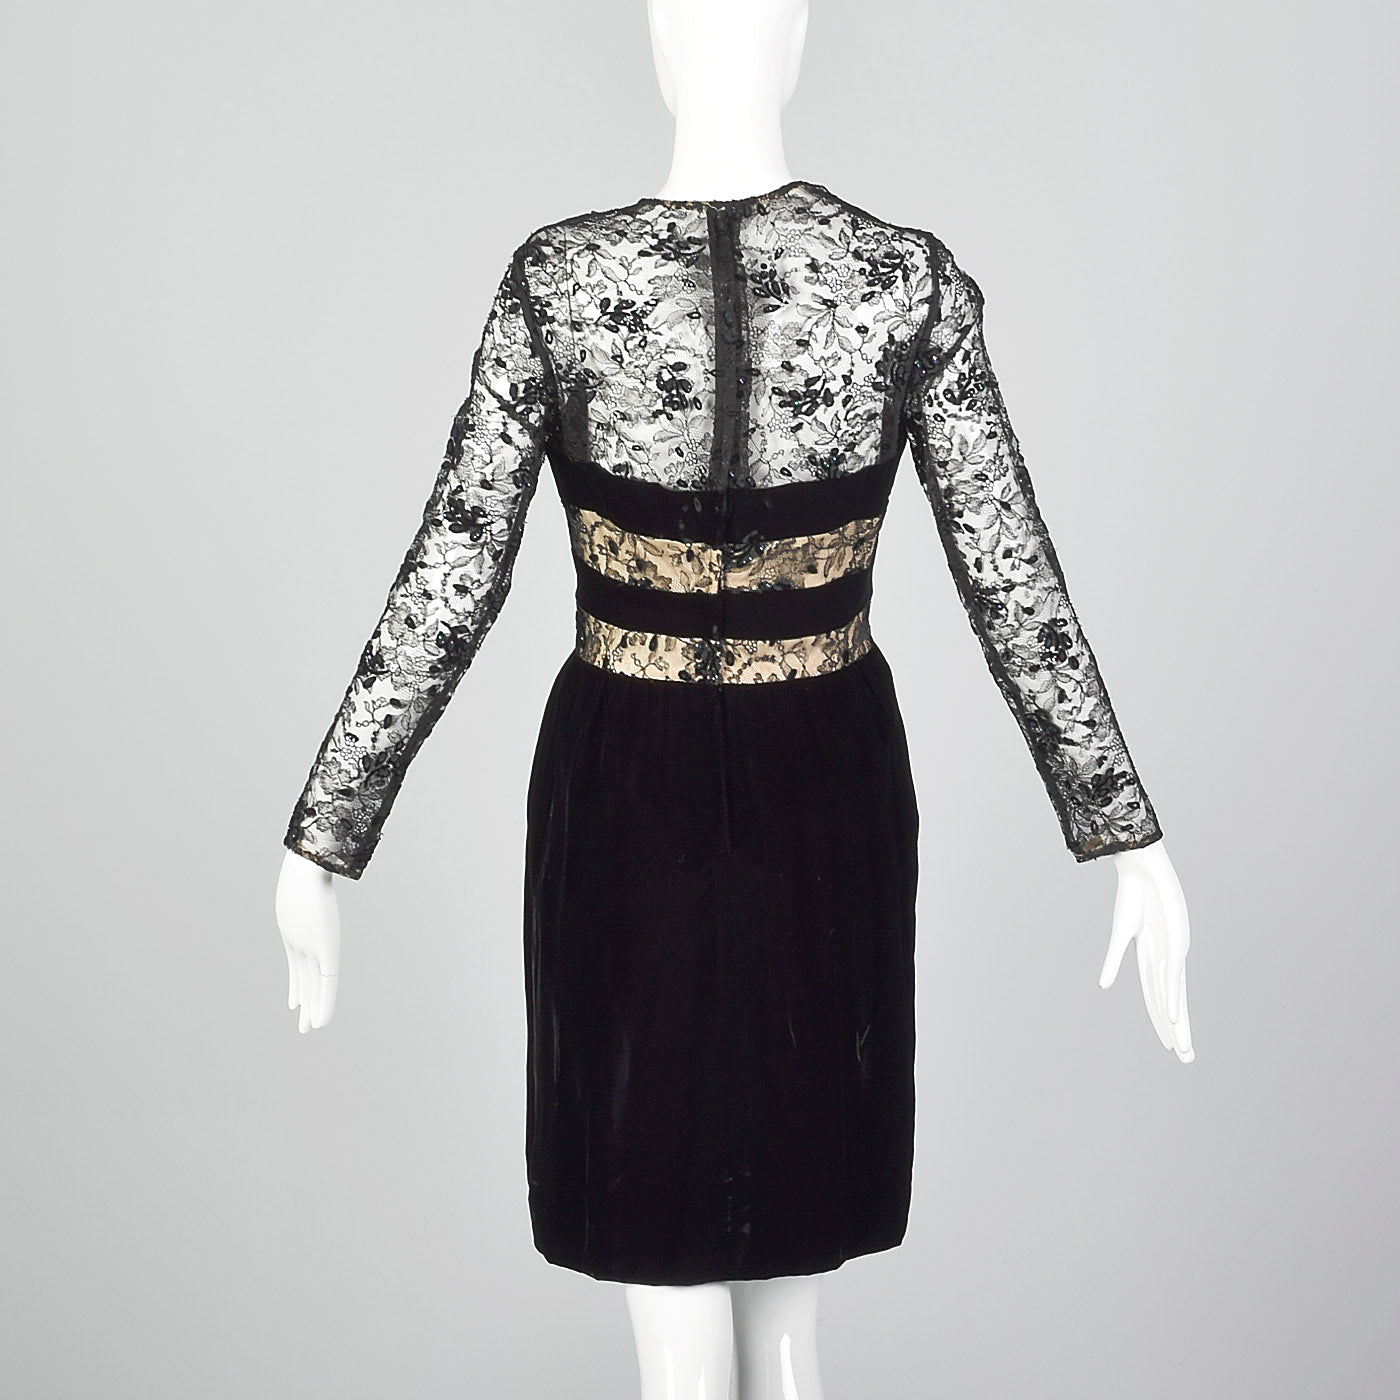 1980s Victor Costa Black Velvet Dress with Lace Illusion Bodice